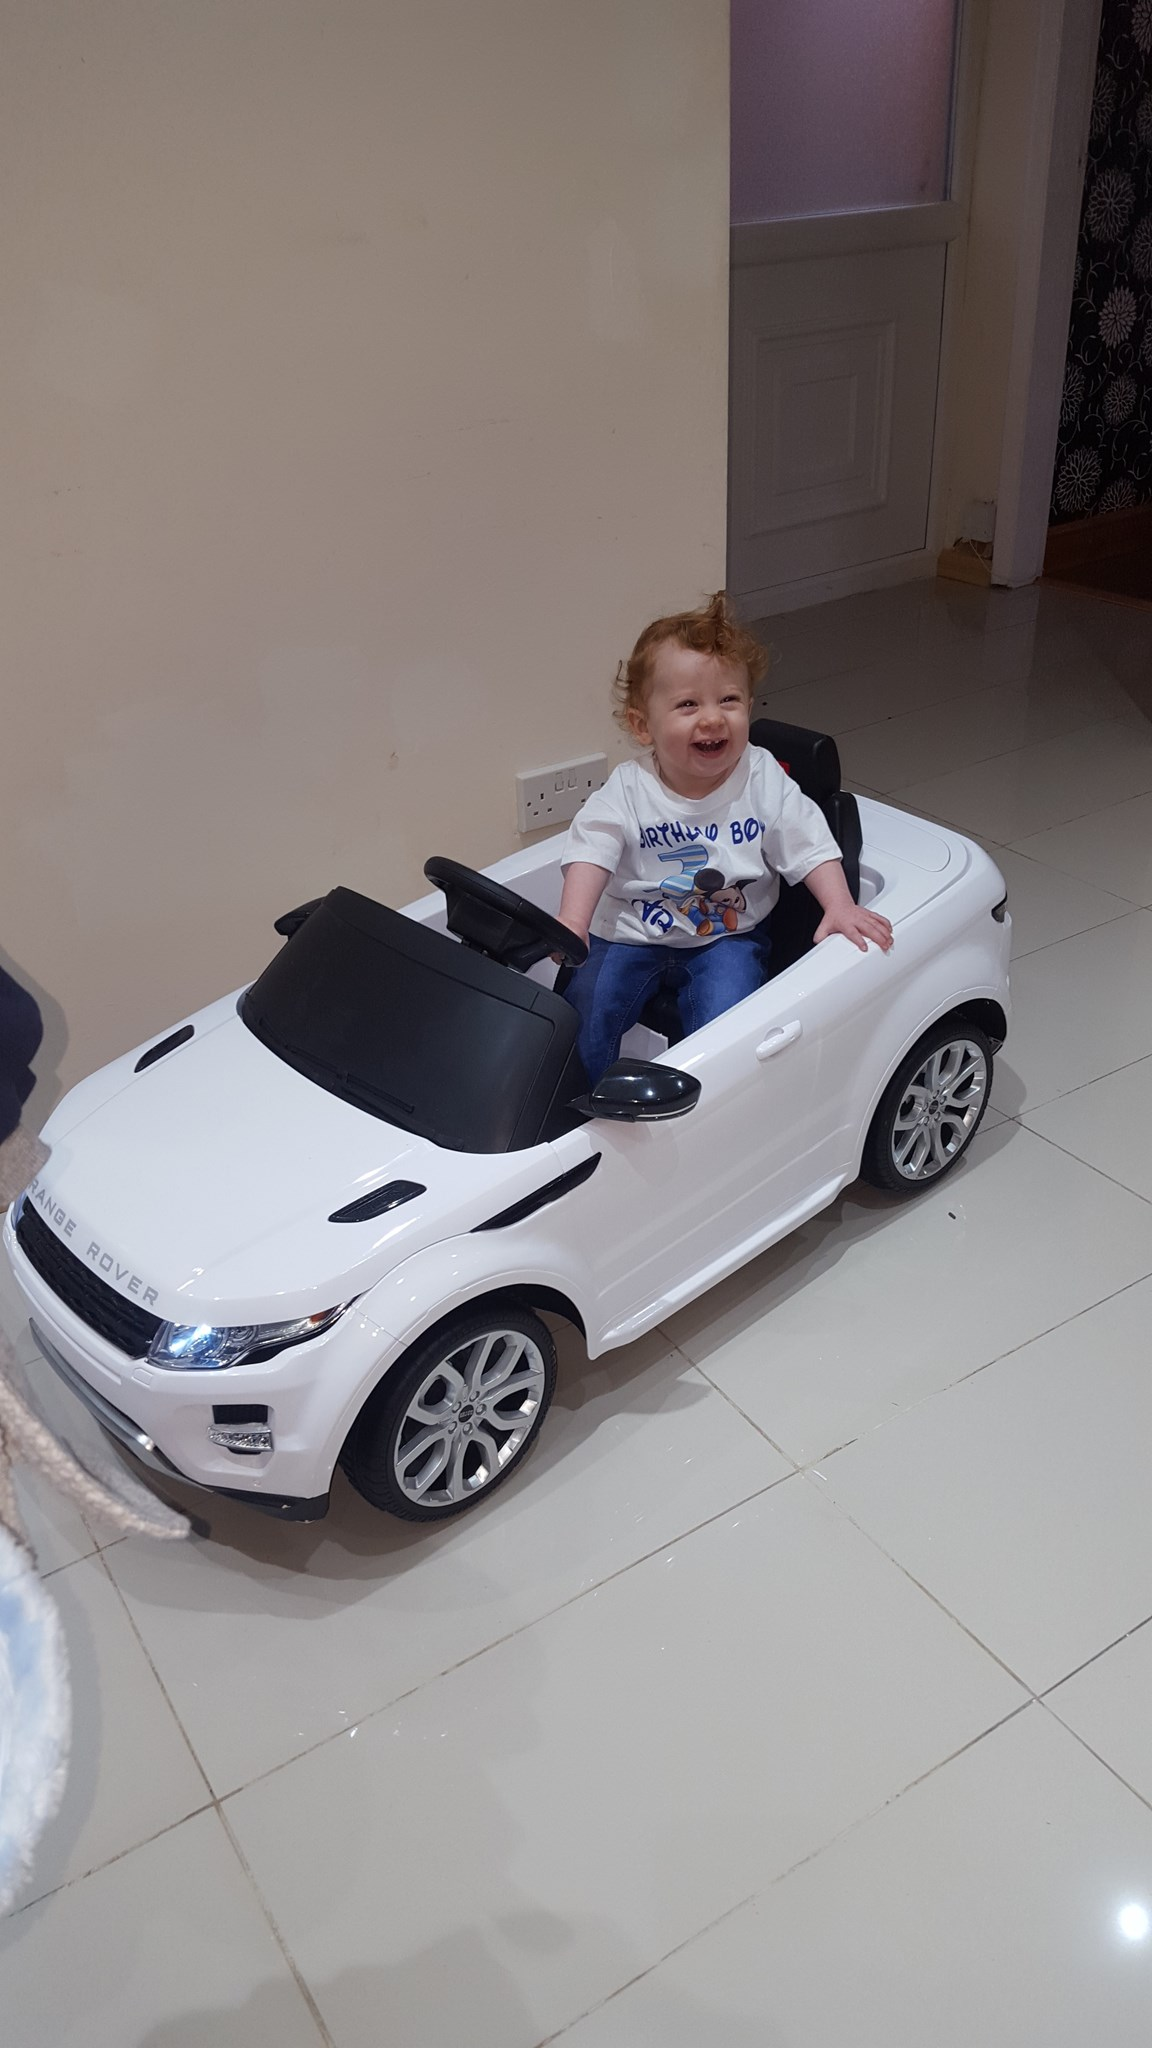 Hey uncle Richard im 1years old. I hope you like my new ride. Love you xxx